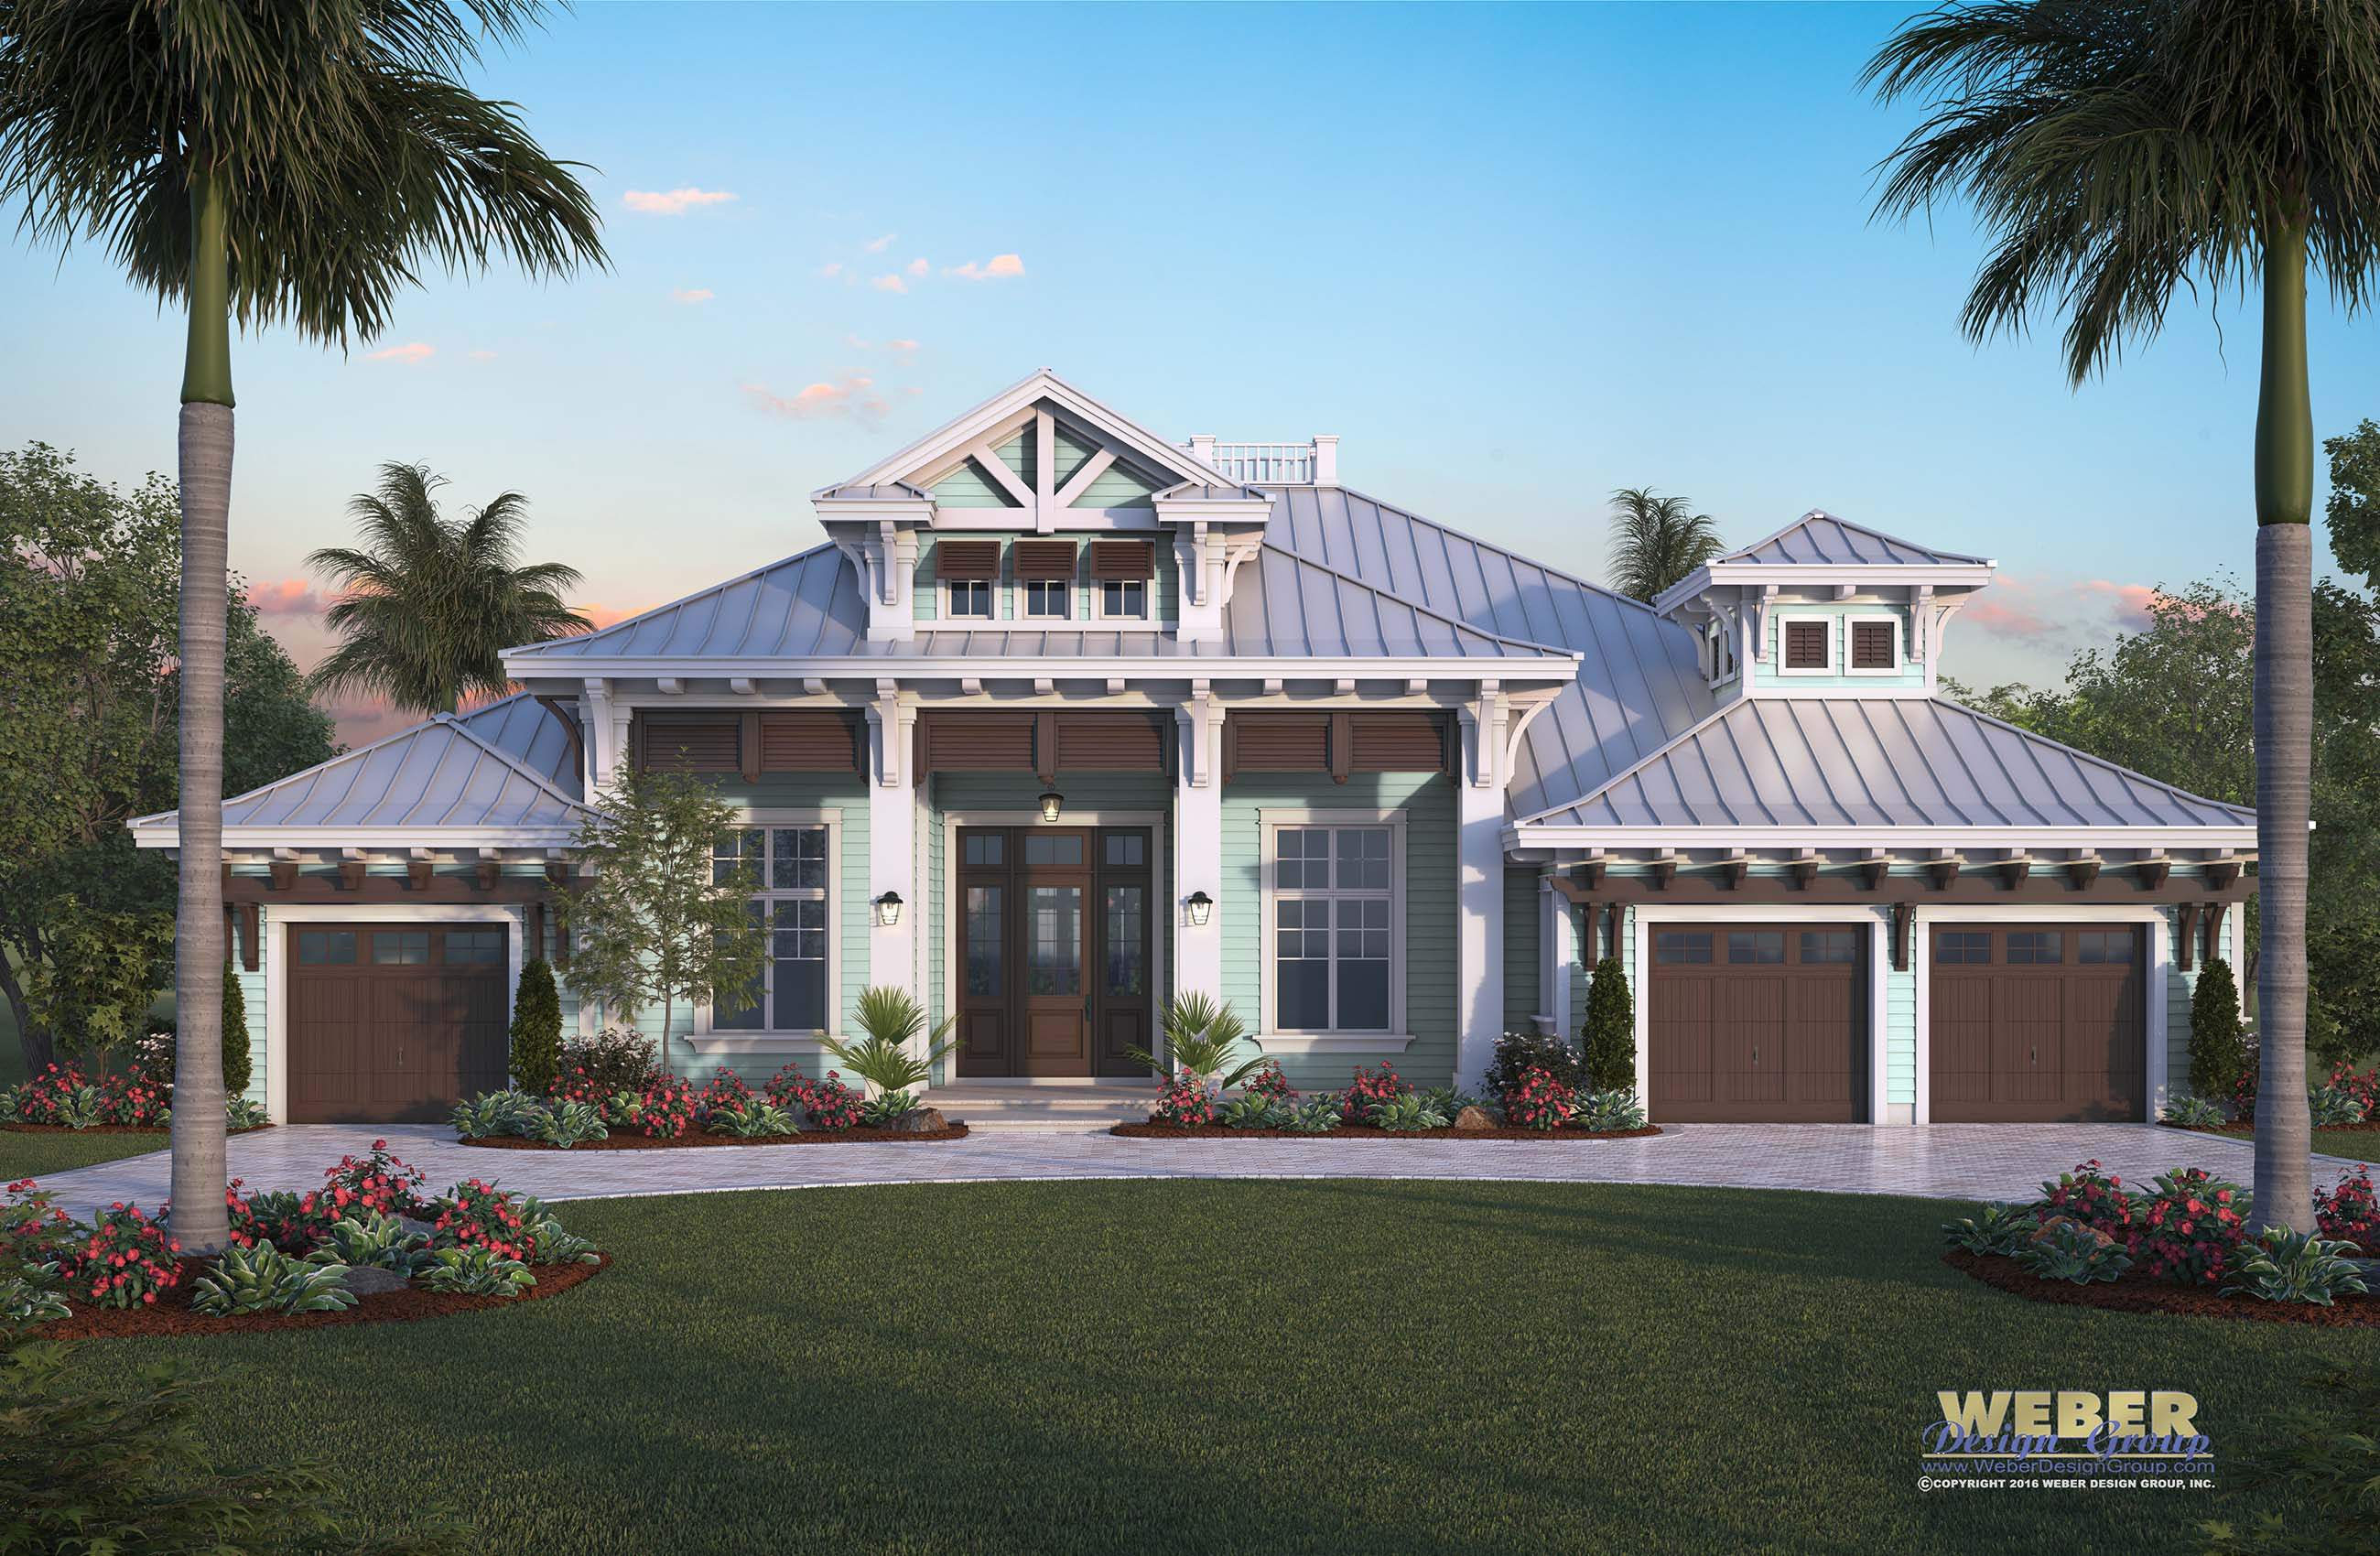 Harbor house plan luxury caribbean beach home outdoor for House plans for florida homes